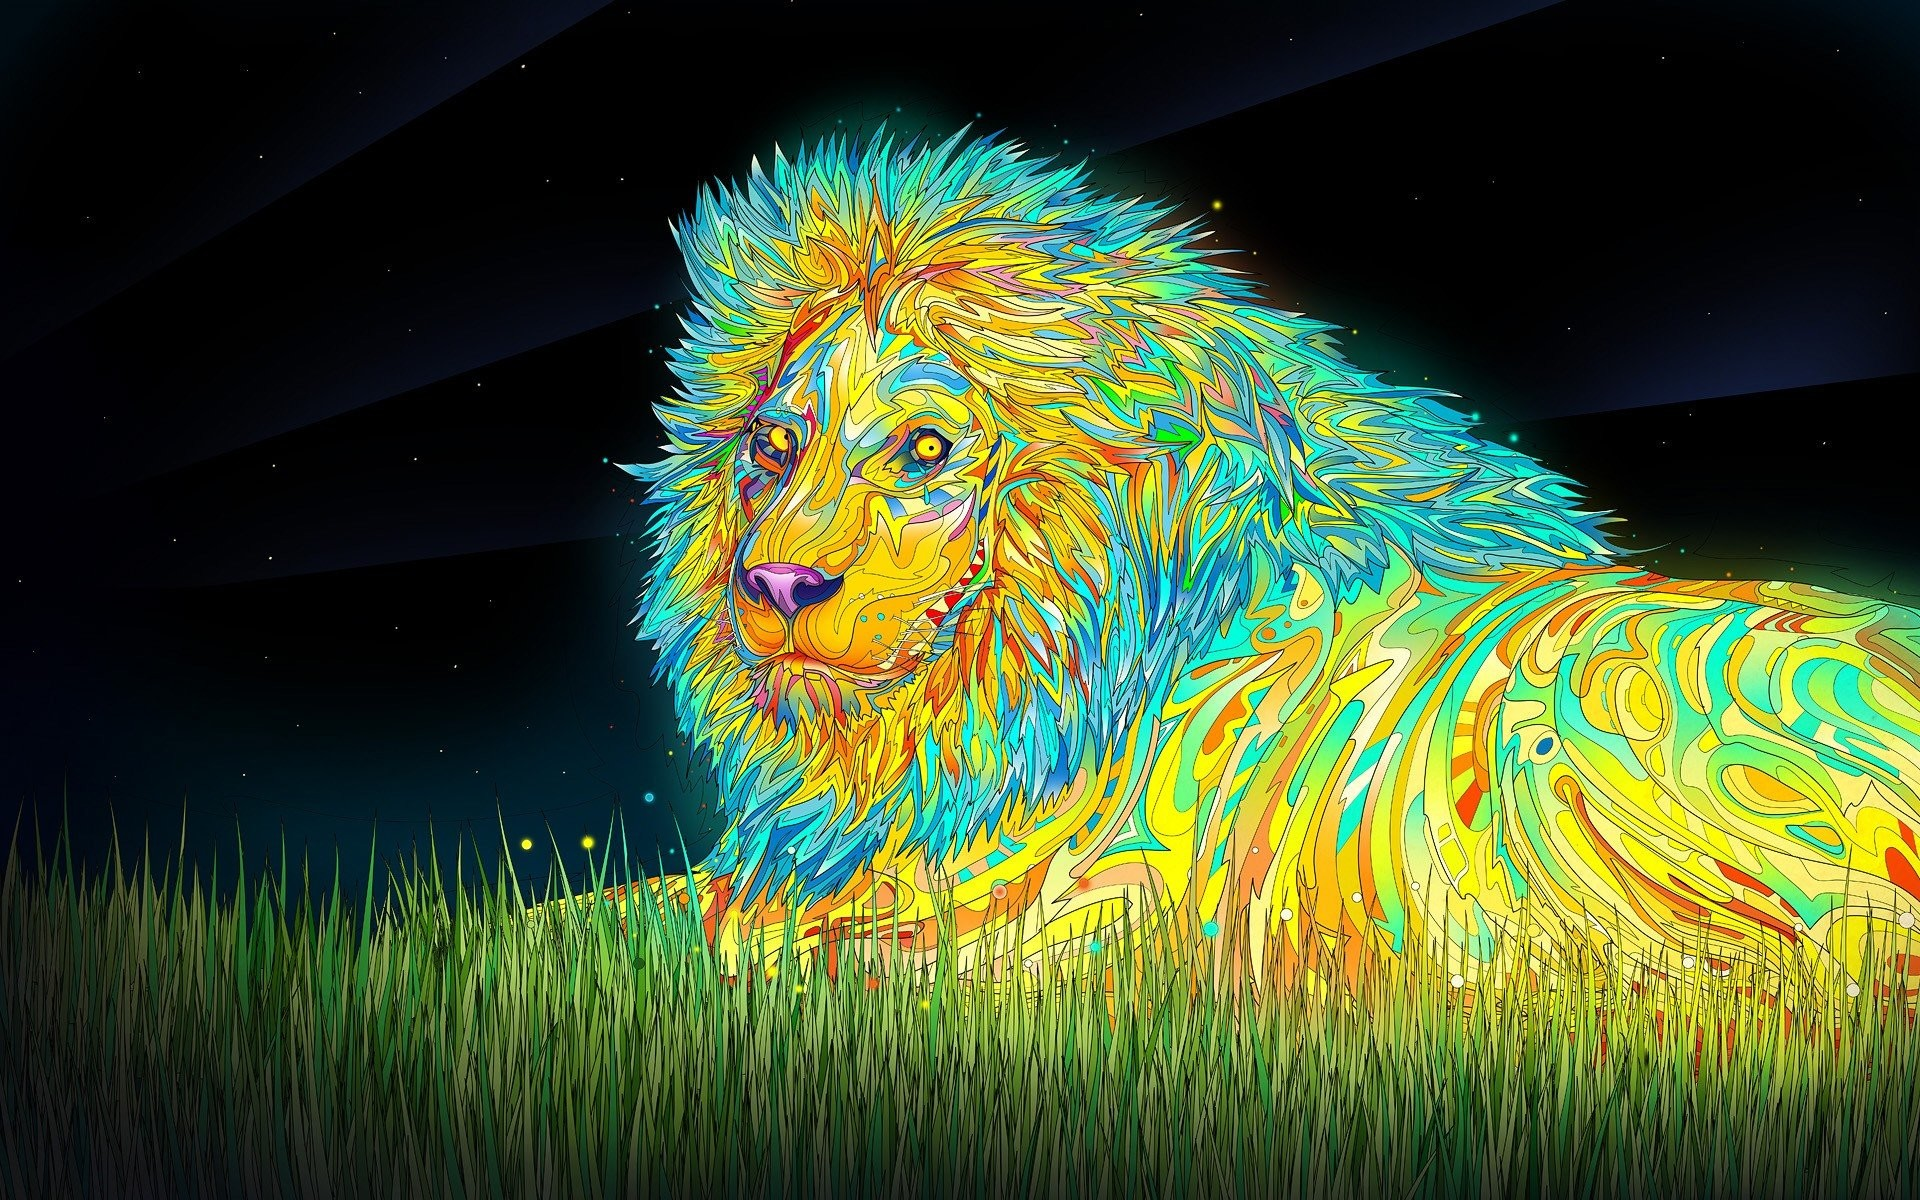 Psychedelic Lions Colorful Digital Art …